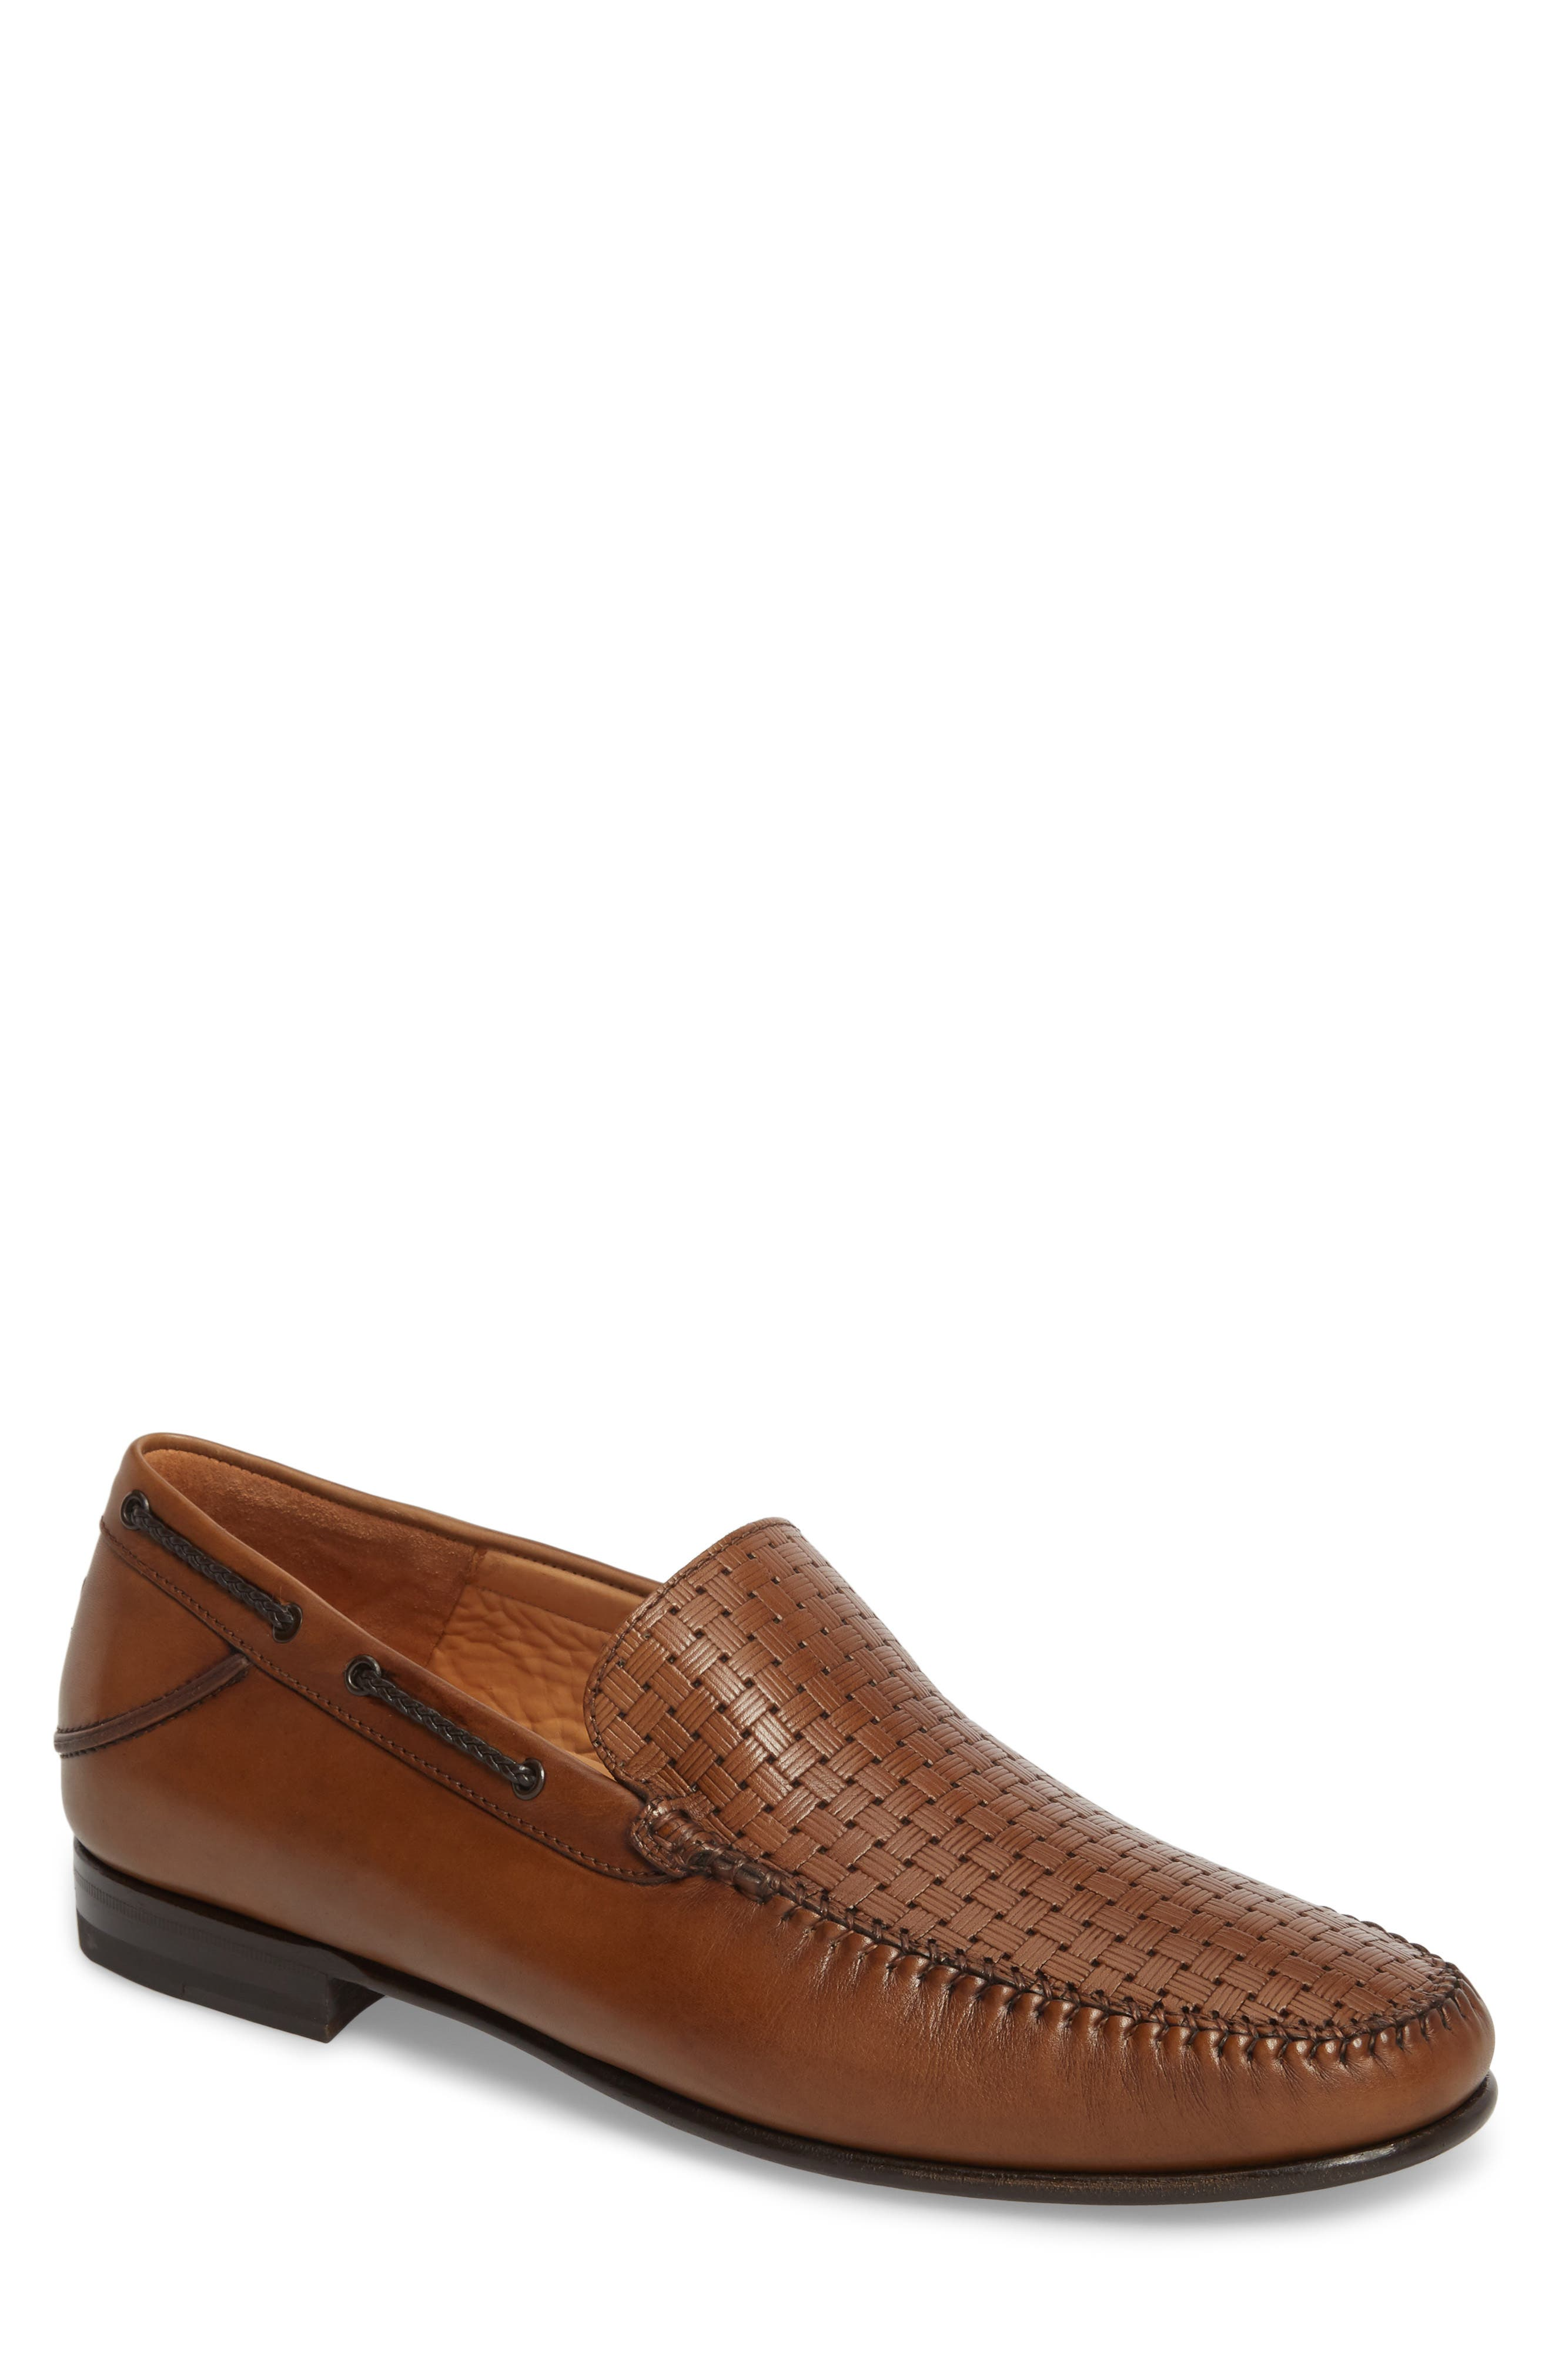 Jano Embossed Moc-Toe Loafer,                         Main,                         color, Cognac Leather